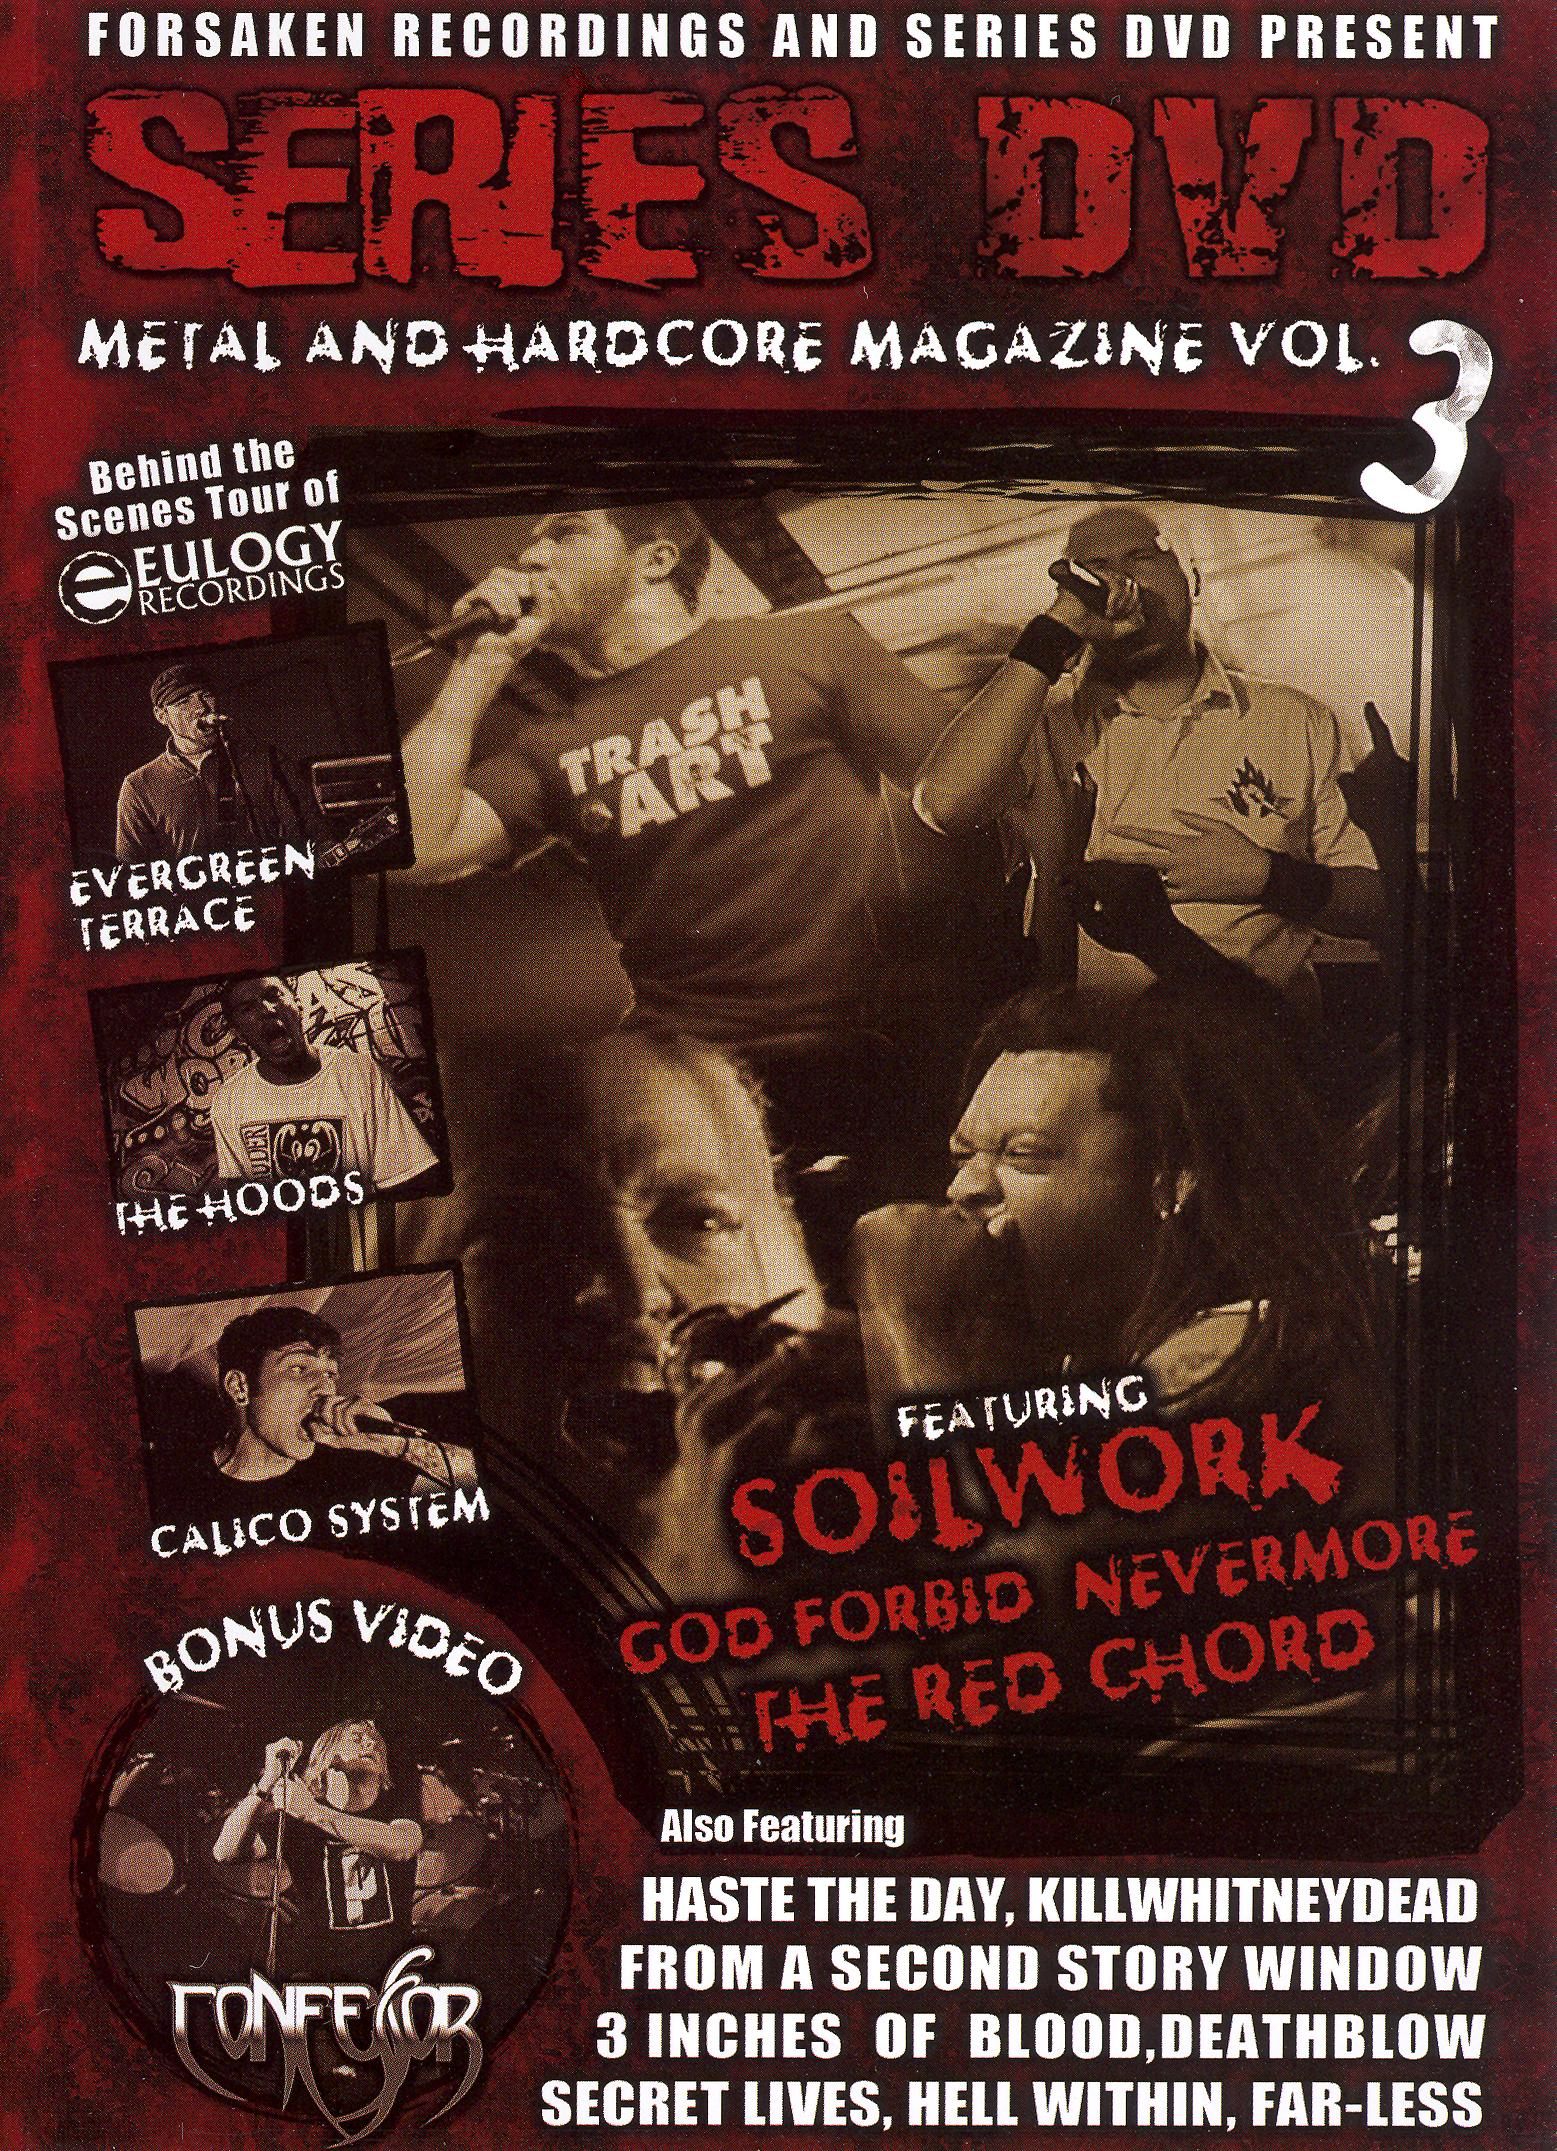 Series DVD: Metal and Hardcore, Vol. 3